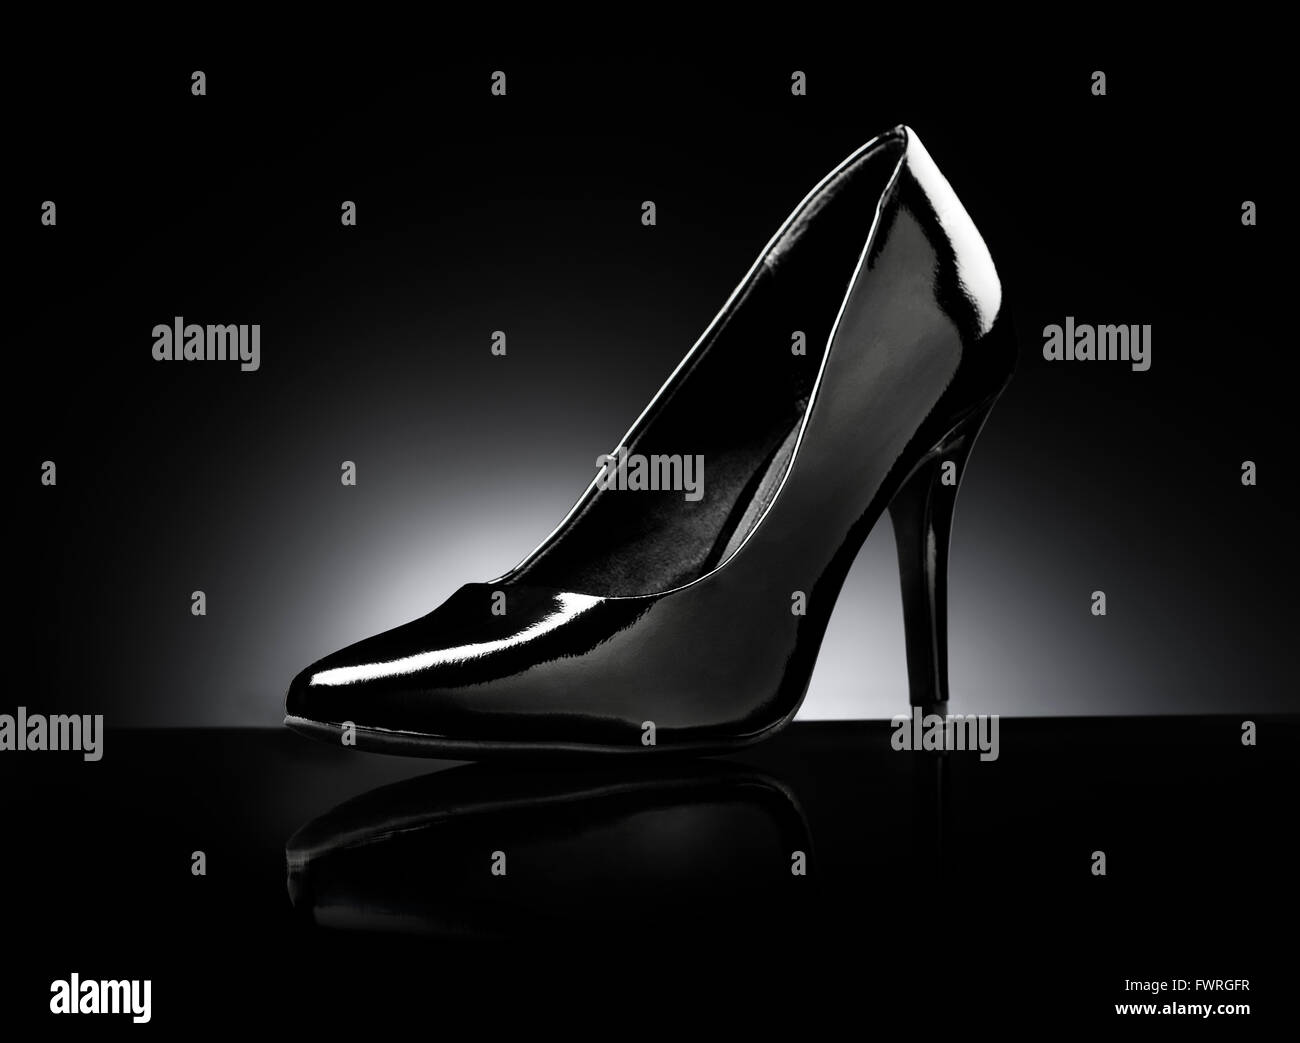 Black glossy ladies stiletto heel pump on black reflective background. - Stock Image